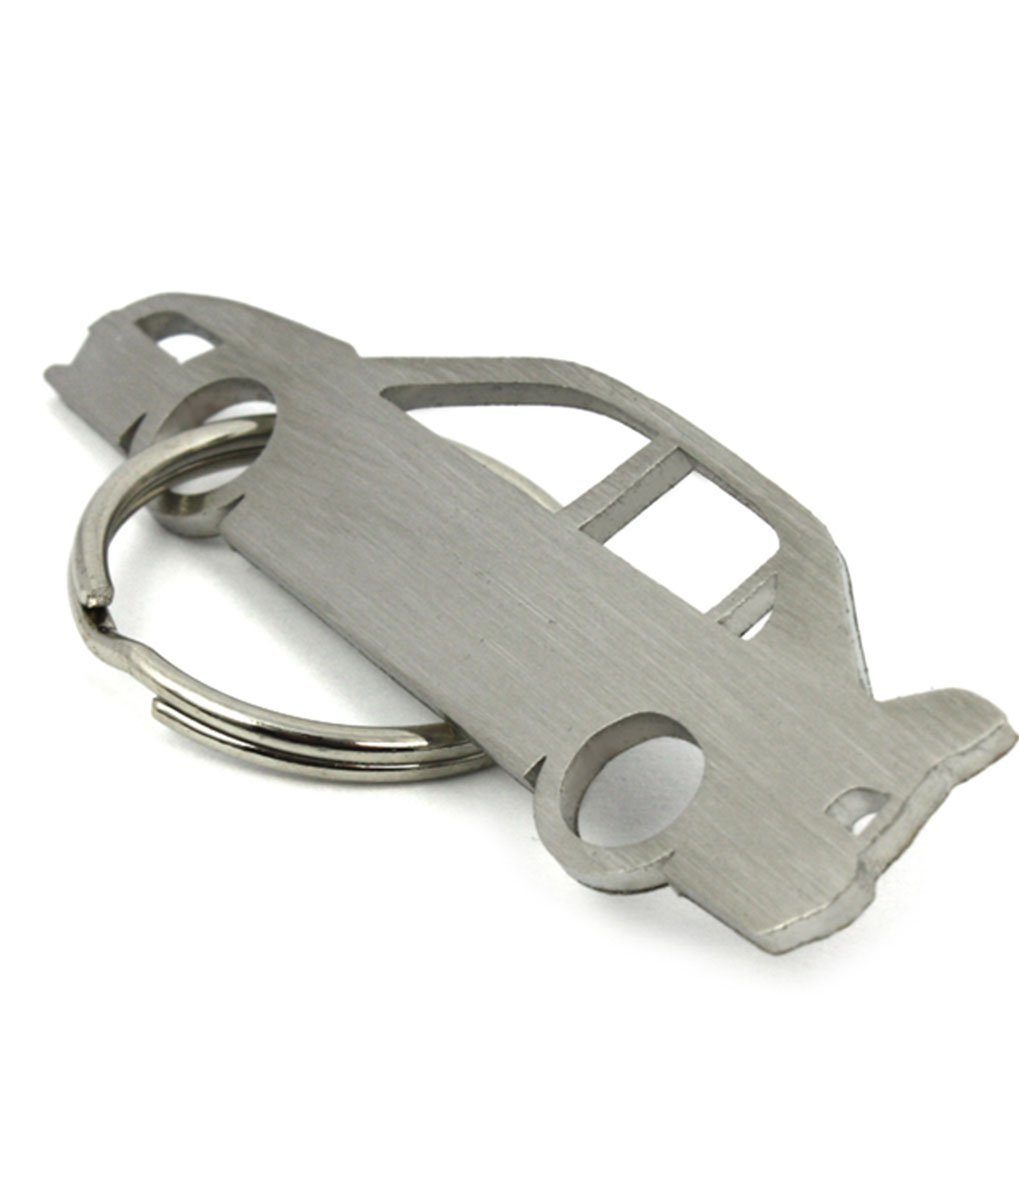 Key Ring - Mitsubishi Evo IX Key Ring